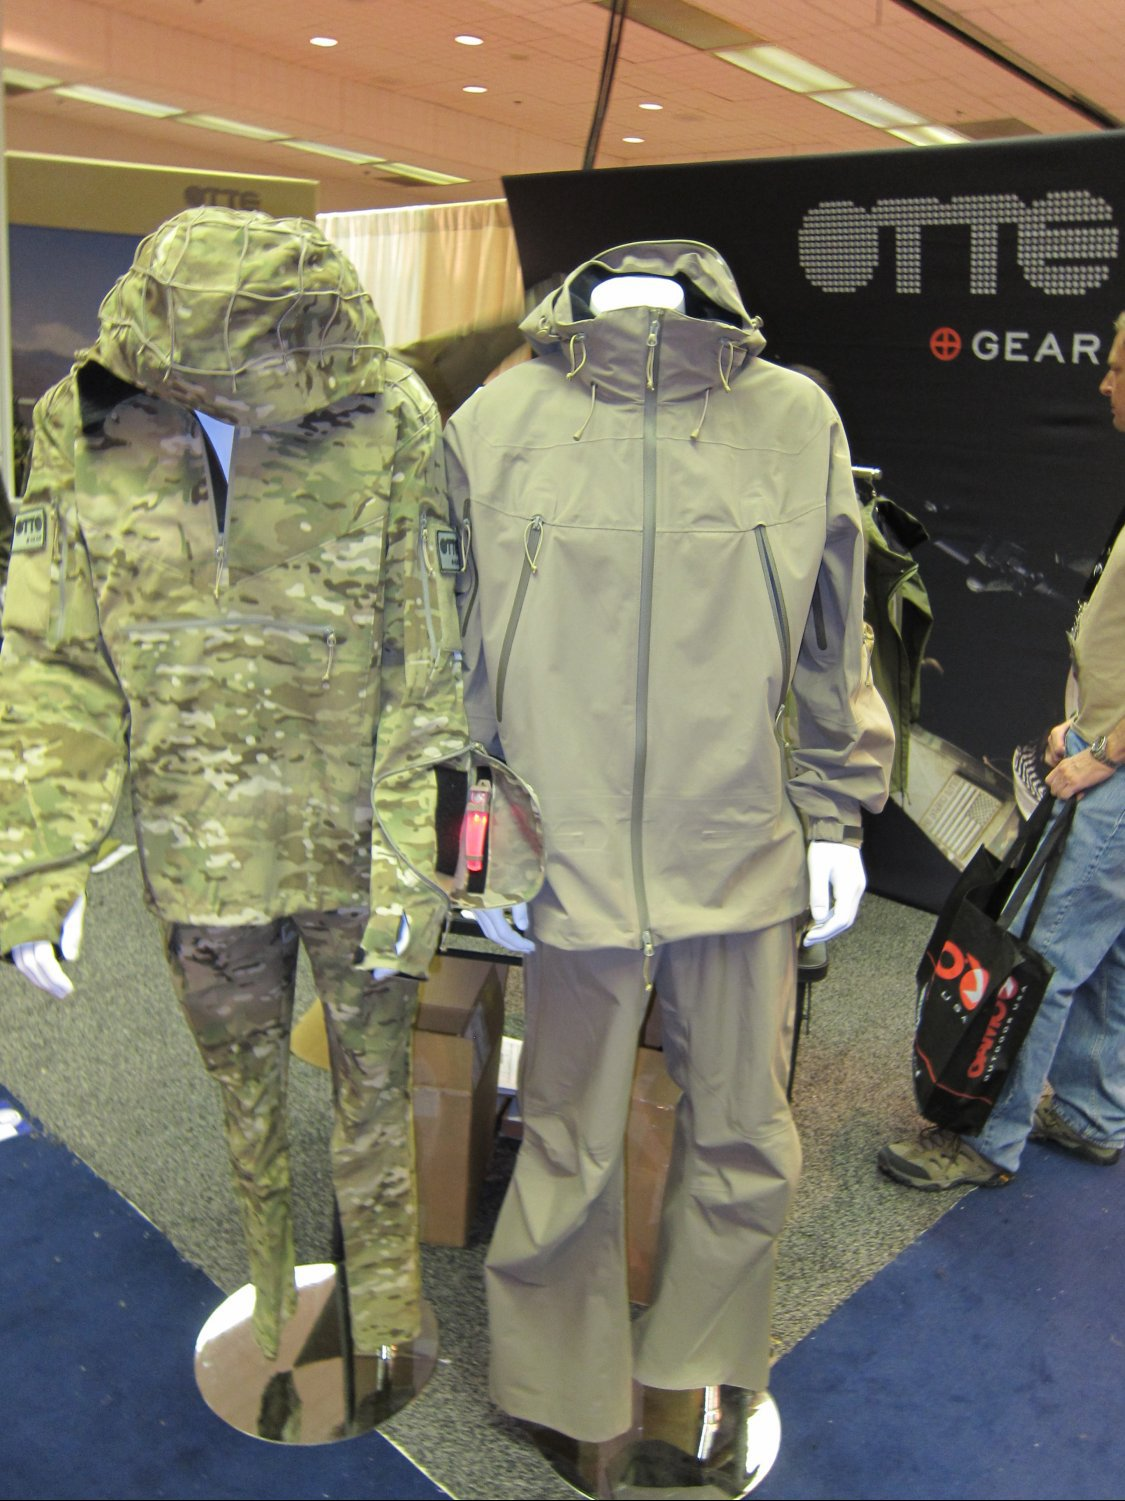 OTTE Gear Combat Anorak Hooded Pullover Tactical Softshell Jacket SHOT Show 2011 DefenseReview.com DR 3 <!  :en  >OTTE Gear Recce/Overwatch Anorak: High End, High Tech Tactical/Combat Soft Shell Hoodie Sniper Jacket (Pullover Type) with Crye MultiCam Camouflage Pattern and Ghillie Platform for Snipers, Recce Operators/Assaulters and Civilian Tactical Shooters<!  :  >